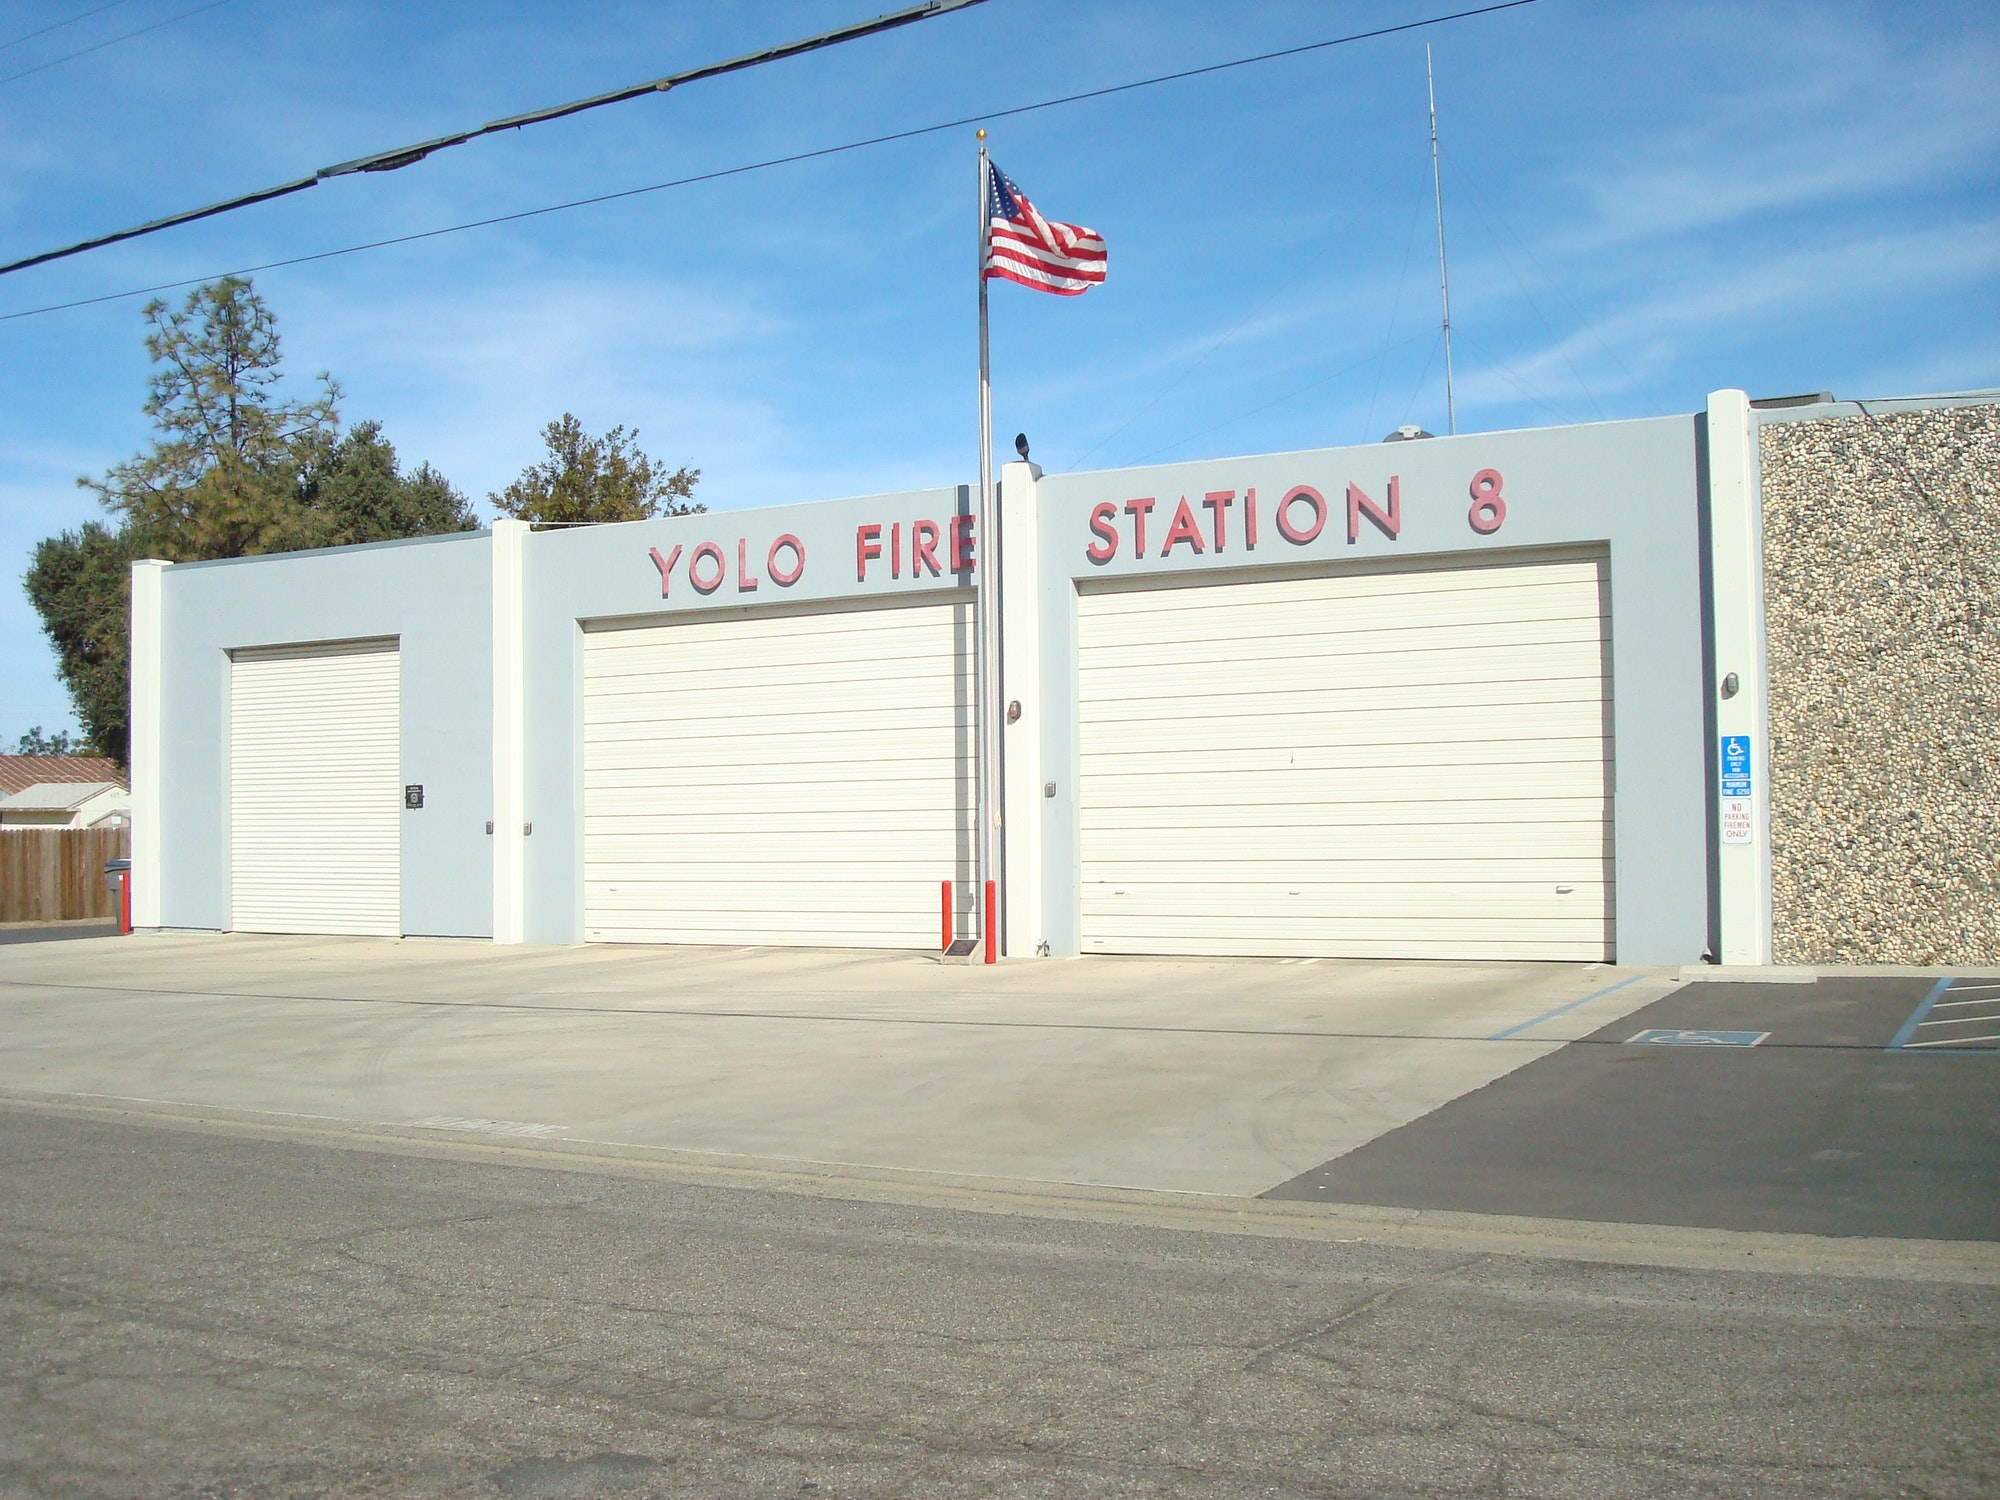 Station 8 in Yolo, CA